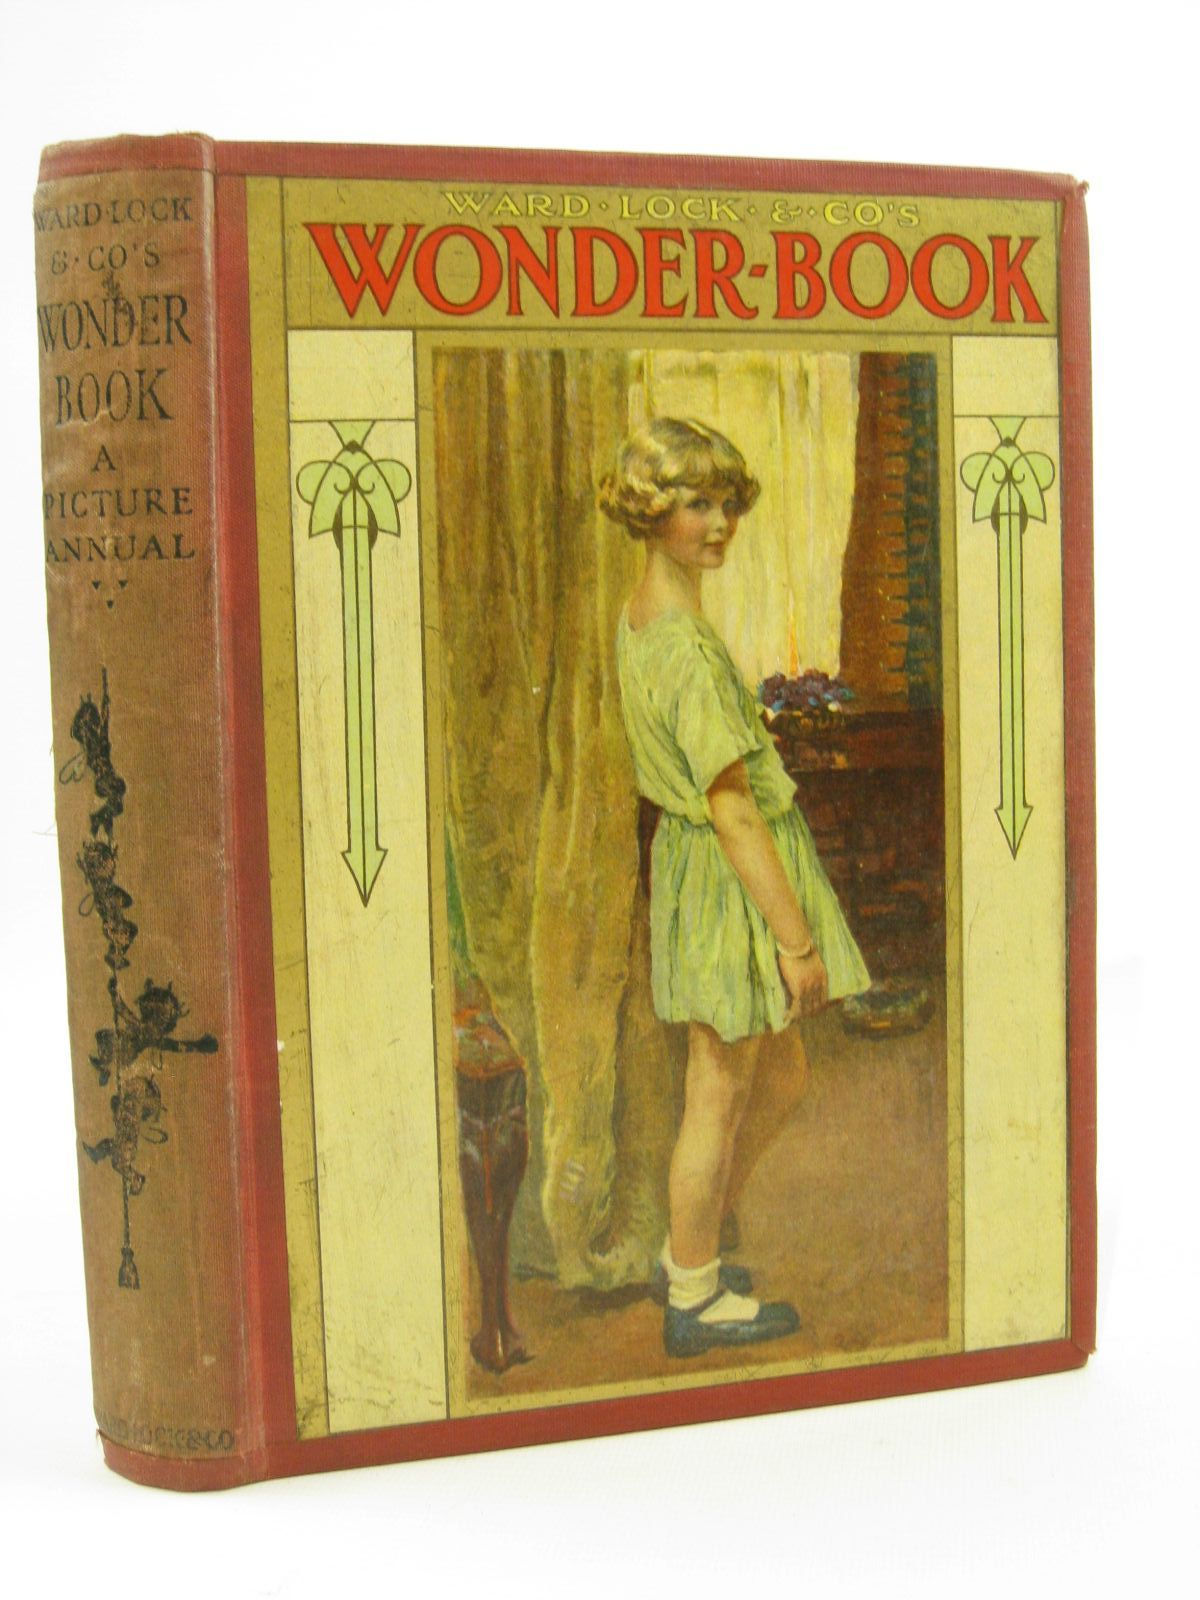 Photo of WARD LOCK &AMP; CO'S WONDER BOOK 1925 written by Golding, Harry<br />Joan, Natalie<br />Rutley, Cecily M.<br />Wynne, May<br />Chaundler, Christine<br />et al, illustrated by Anderson, Anne<br />Brisley, Nina K.<br />Tarrant, Margaret<br />Aris, Ernest A.<br />et al., published by Ward Lock & Co Ltd. (STOCK CODE: 1507715)  for sale by Stella & Rose's Books